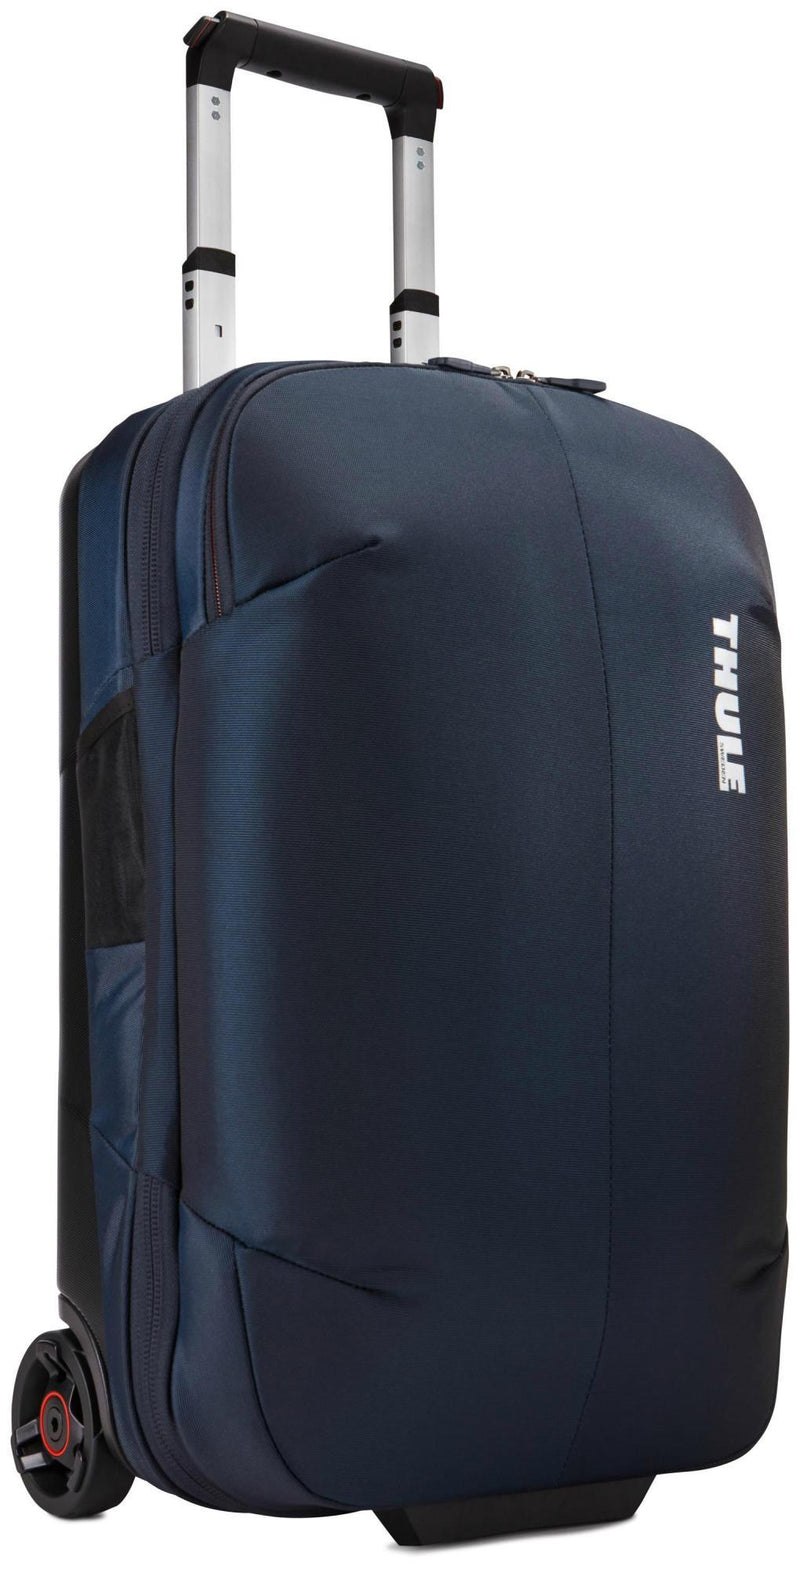 Thule Luggage Subterra Carry-On Luggage 55cm/22